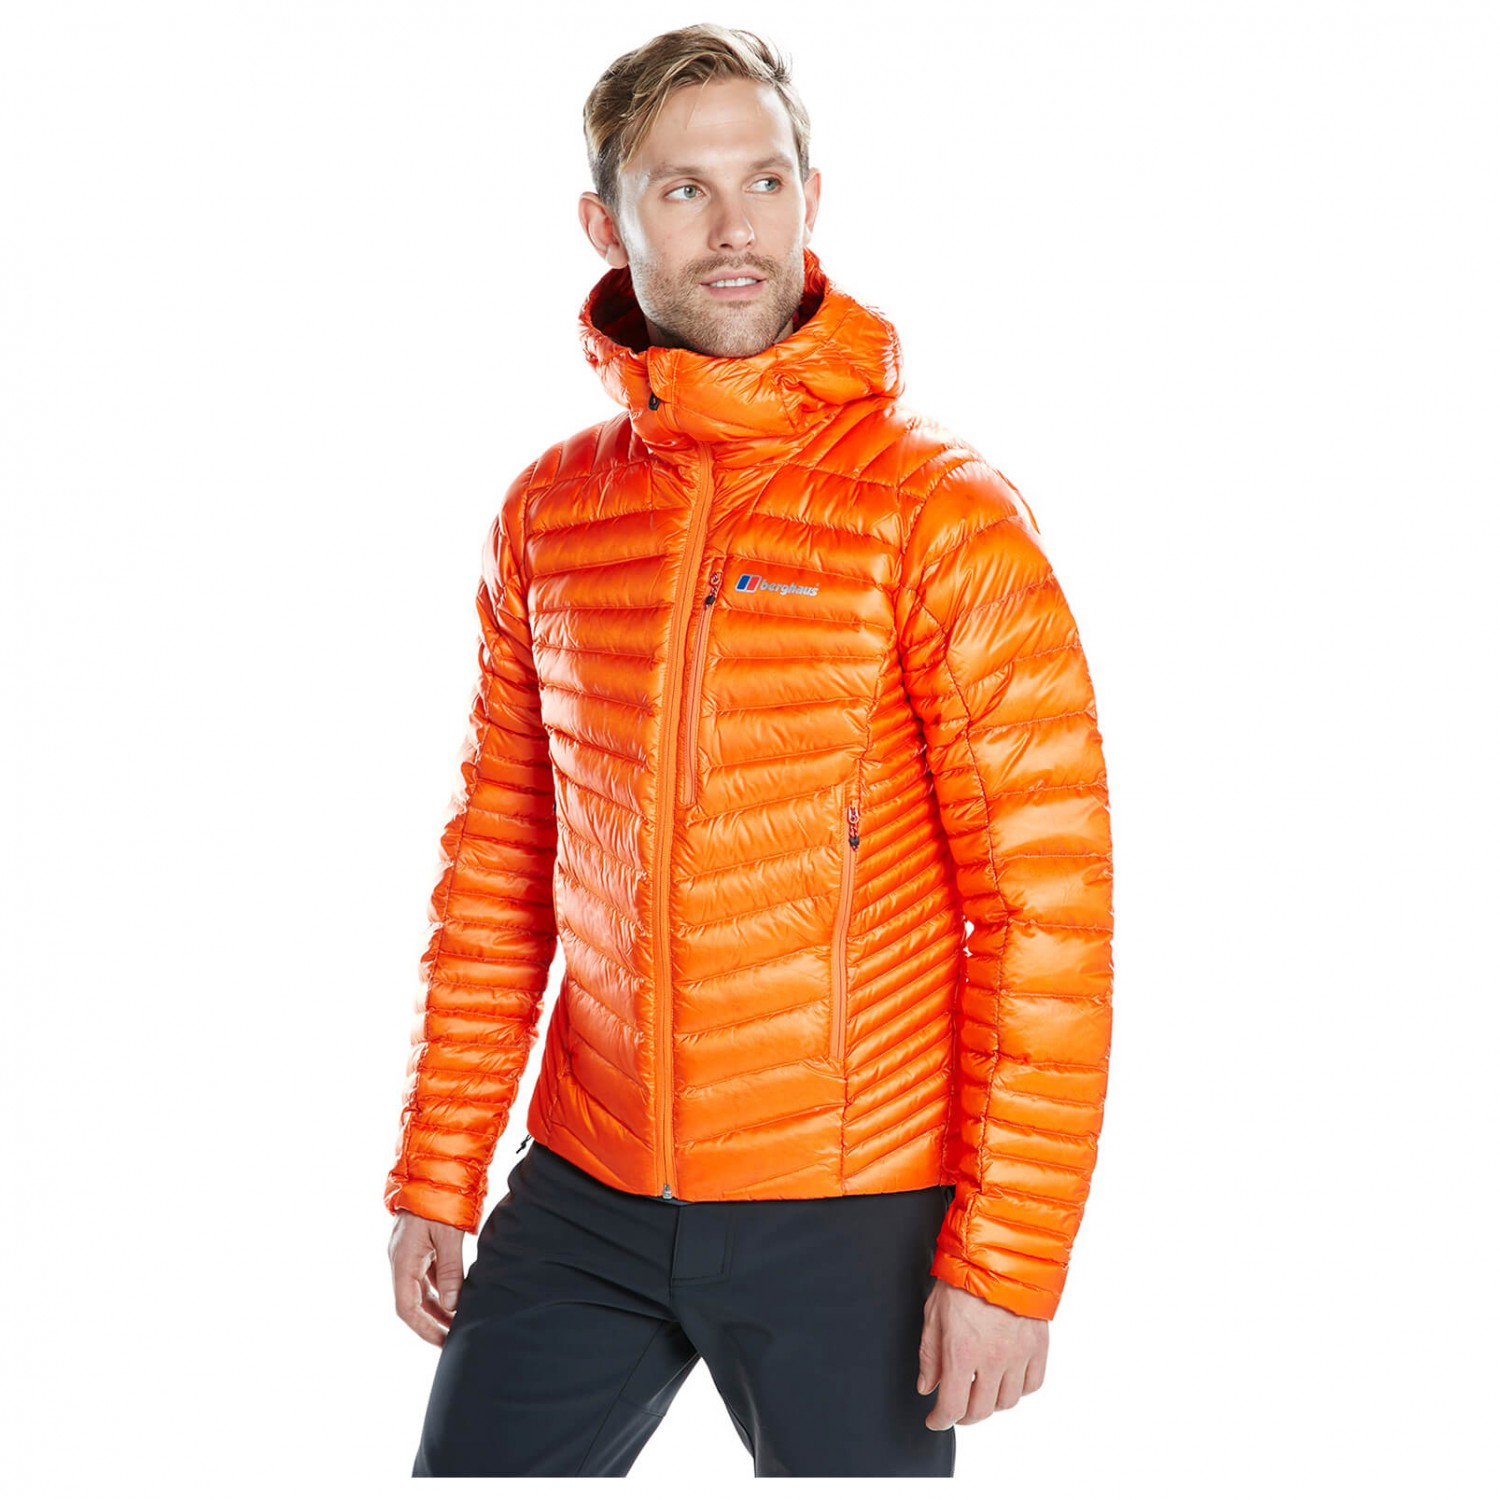 a7c24f212 Berghaus Extrem Micro Down Jacket - Down Jacket Men's | Buy online ...